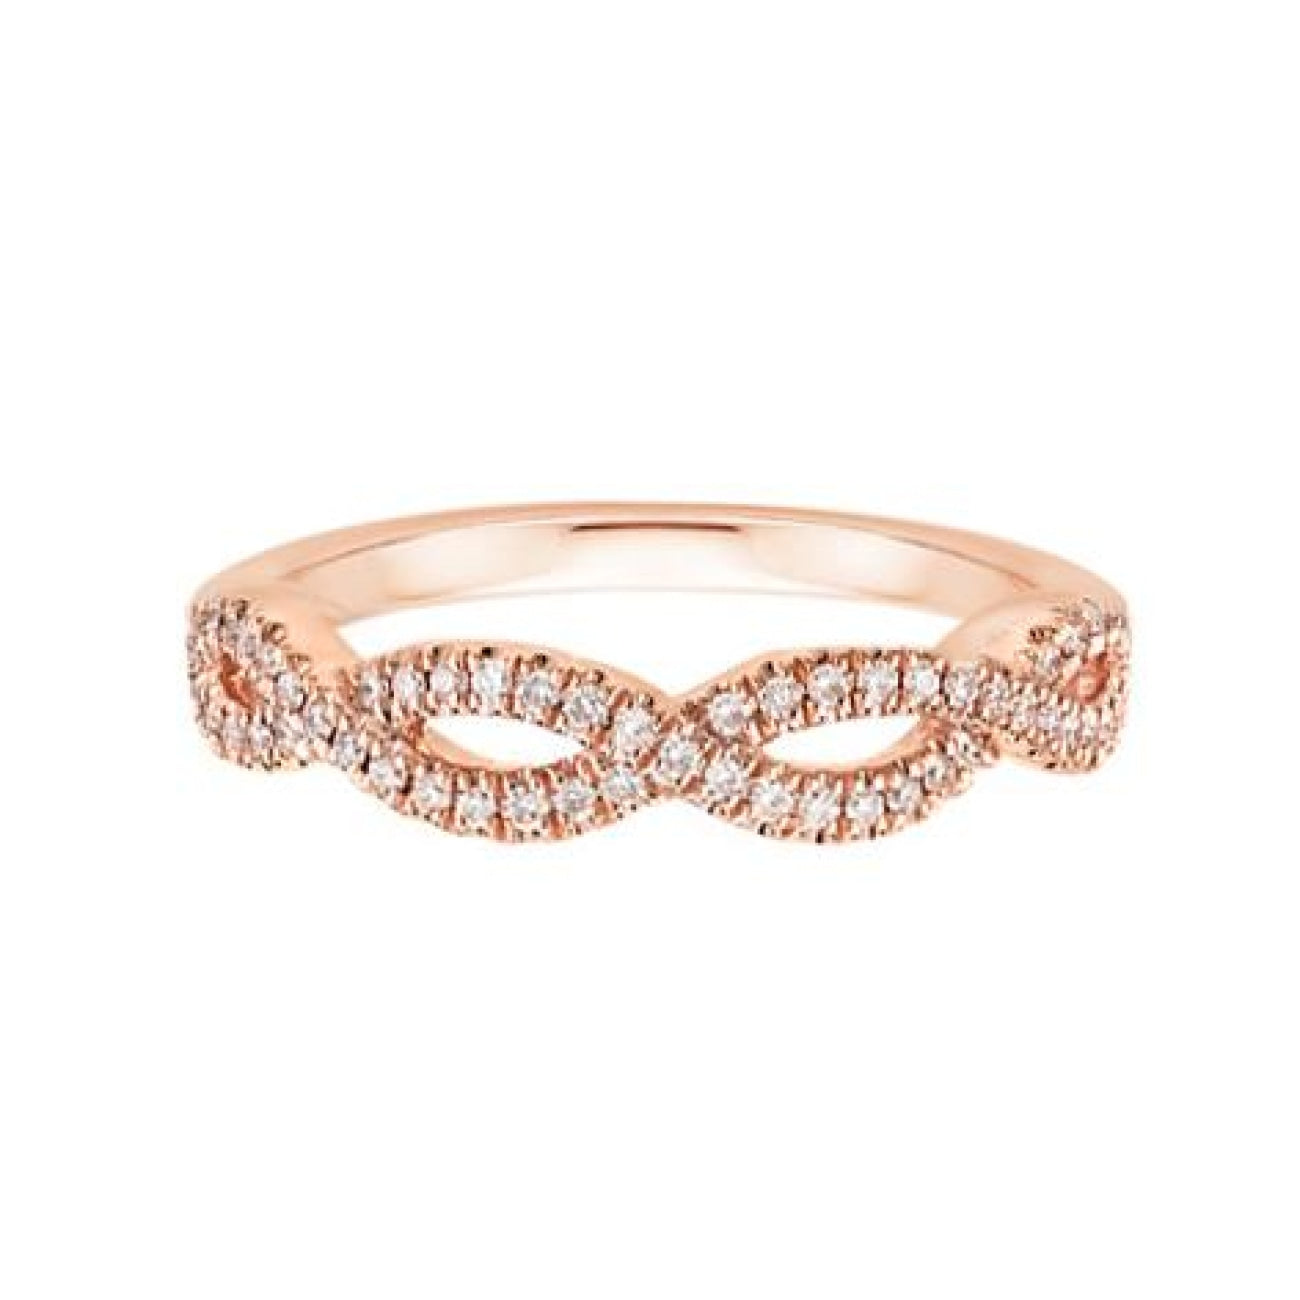 Manfredi Jewels Jewelry - Wedding Band | Manfredi Jewels